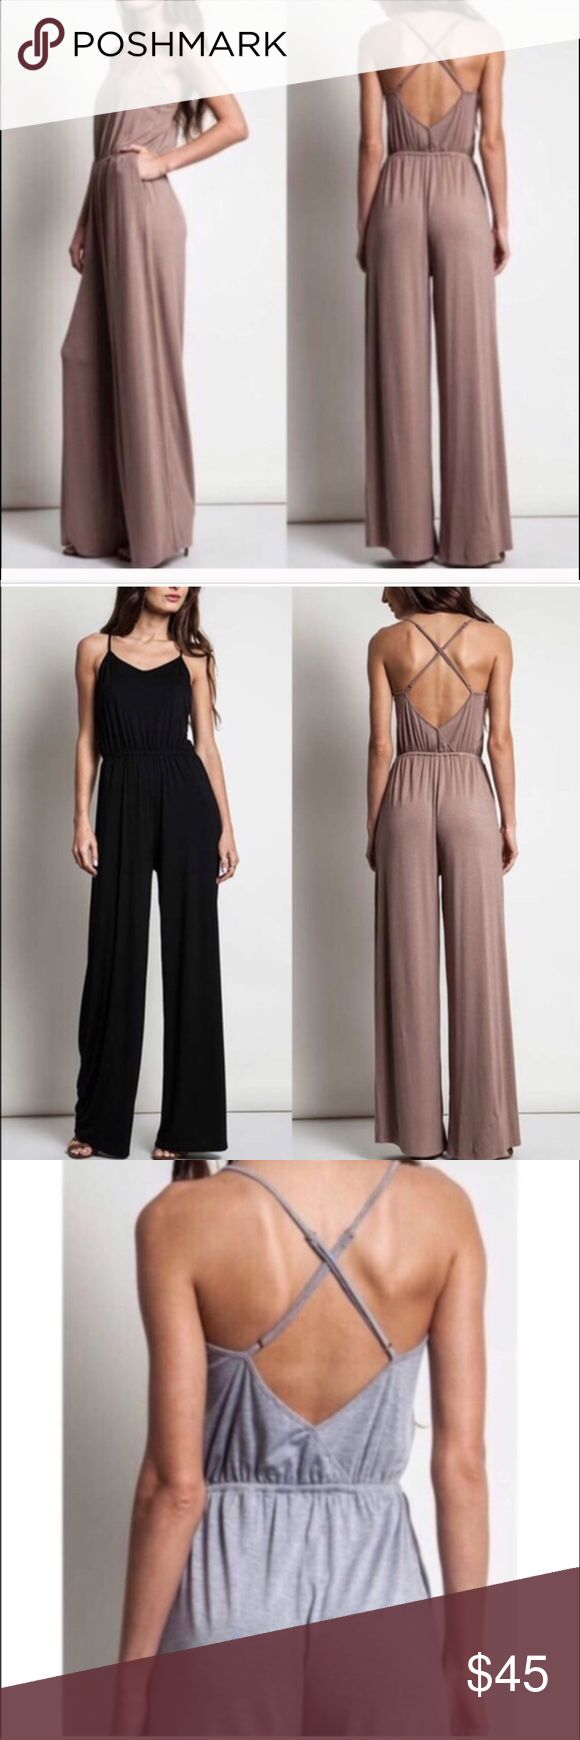 Sexy wide leg pants jump suit romper jumper dress Brand new sexy jump suit jumper. High wasted. Wide leg pants. Criss cross back. Backless open-back style. Adjustable straps, elastic waist. High quality material. Super comfortable! Nice stretchy fabric. Retail- new. MOCHA color only. Dresses